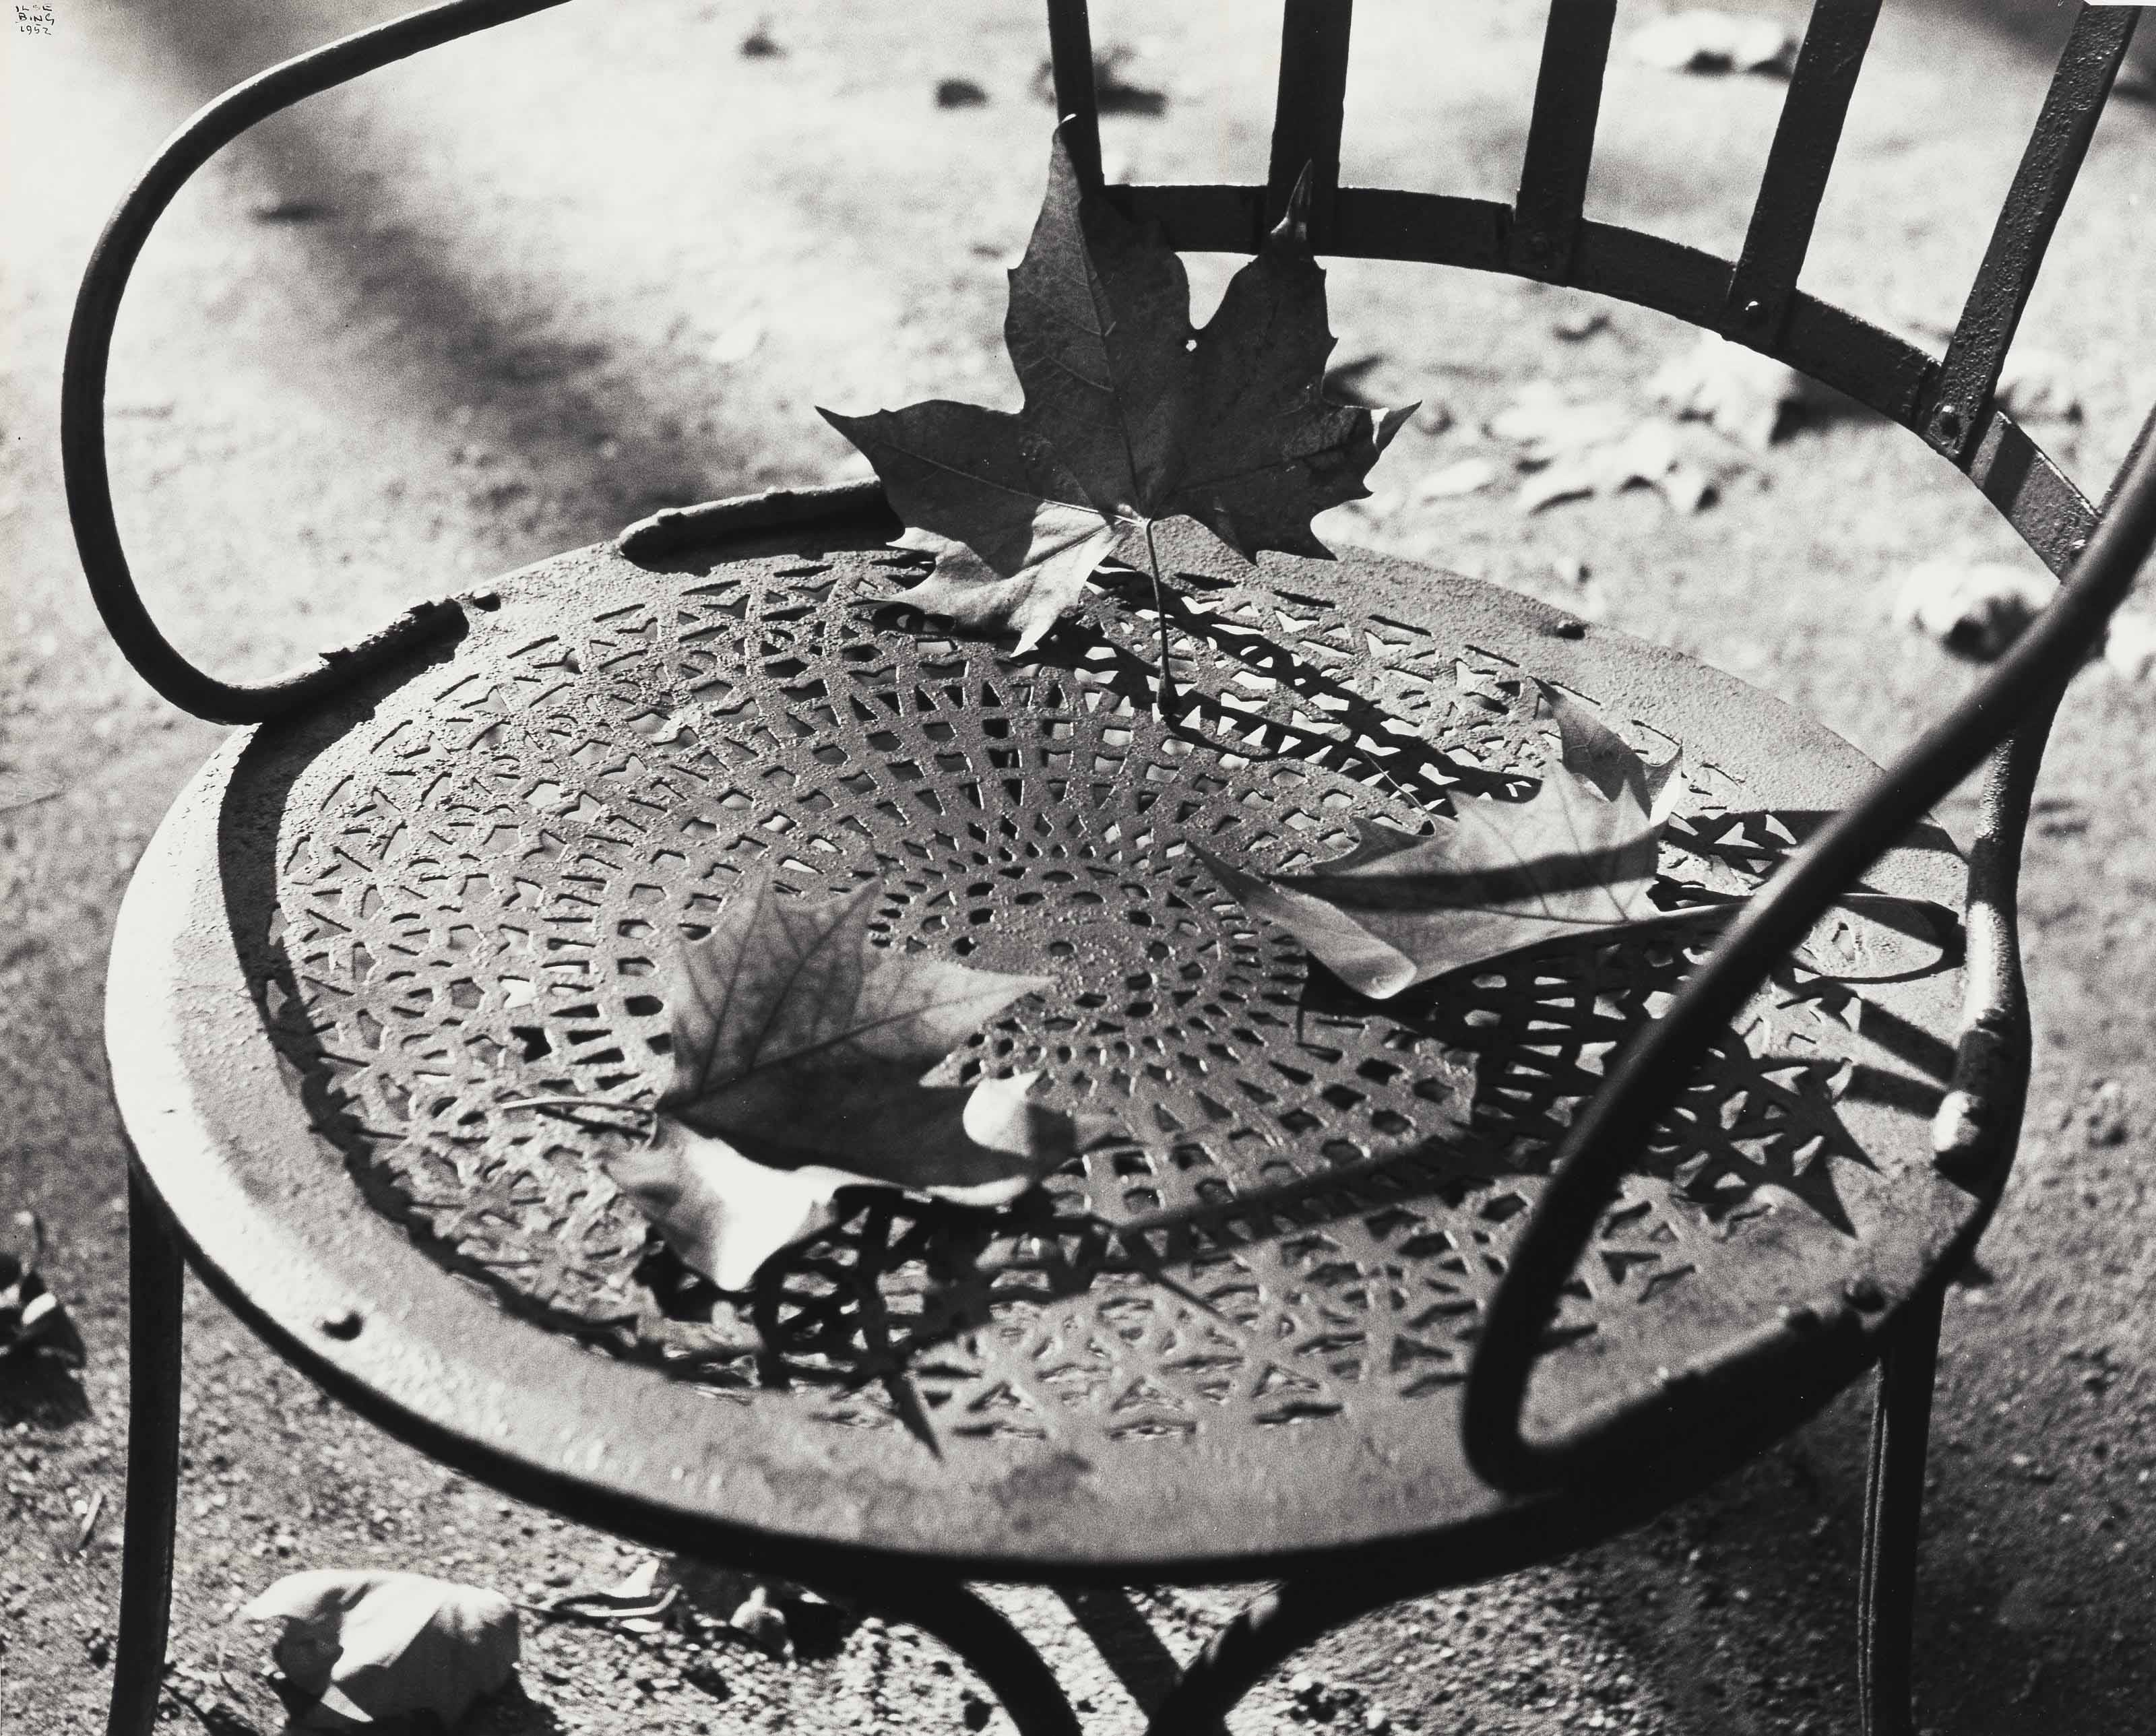 Chair with Dead Leaves, Jardin de Luxembourg, Paris, 1952